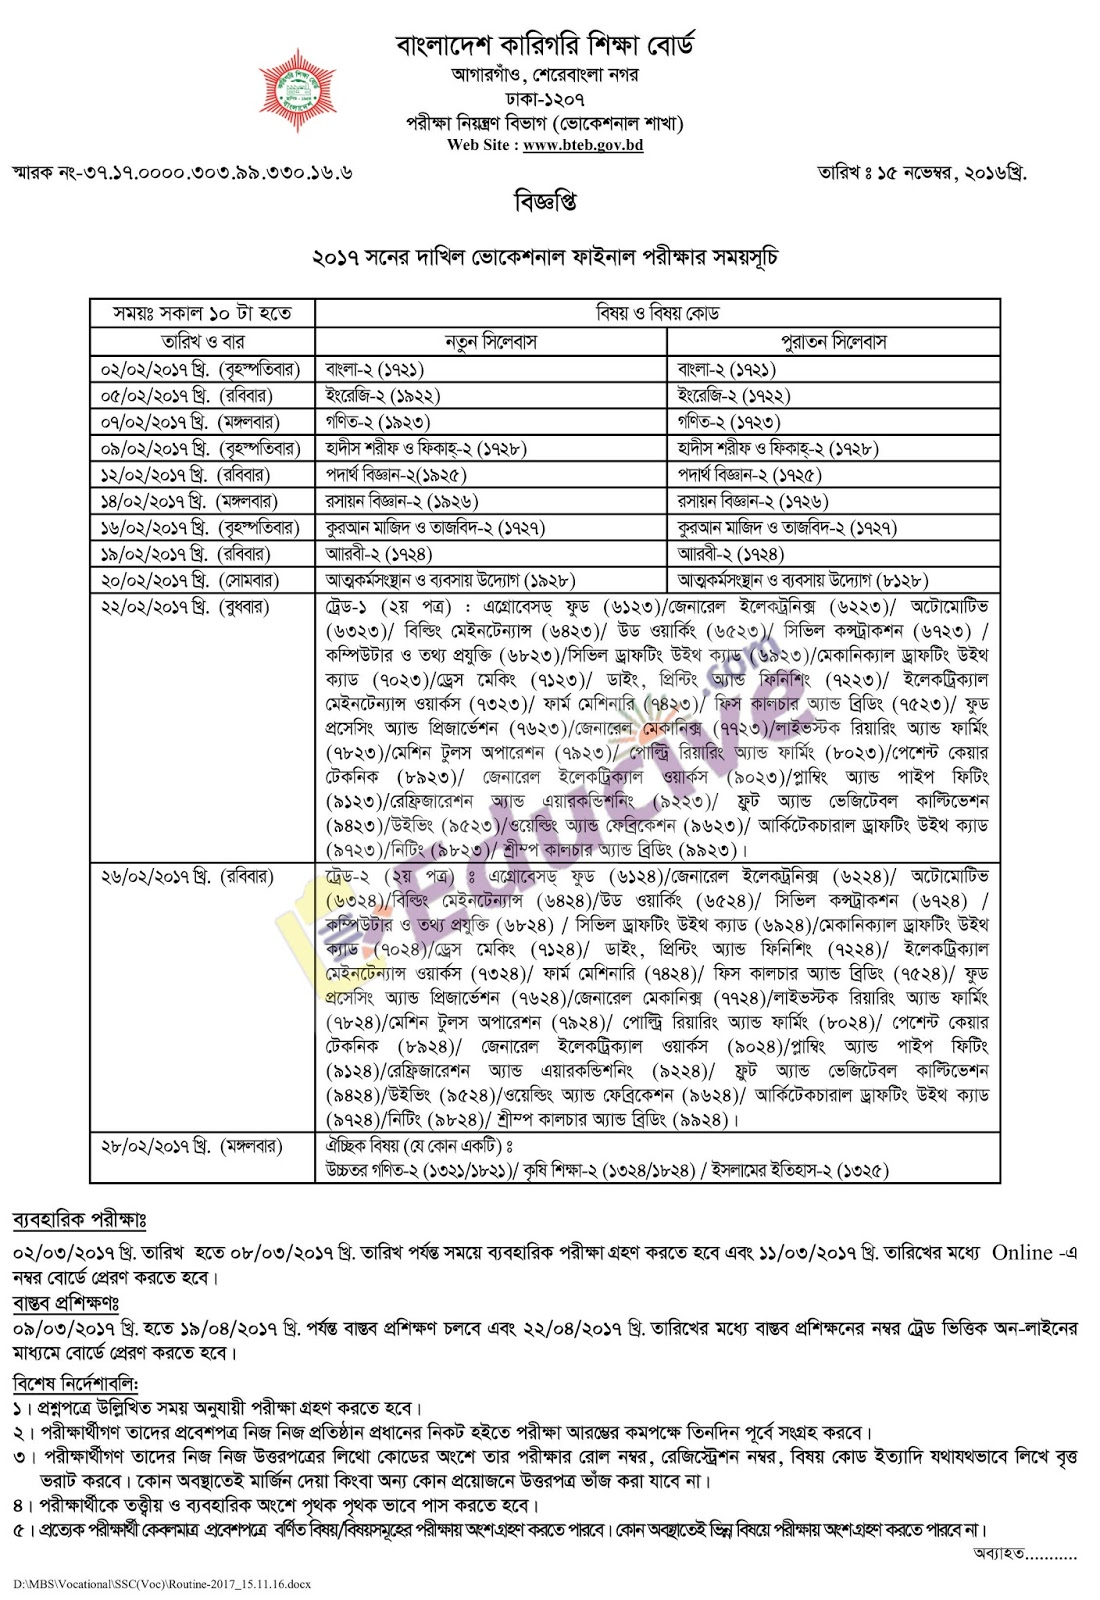 Dakhil vocational examination routine 2017. This is maintain Bangladesh technical education board